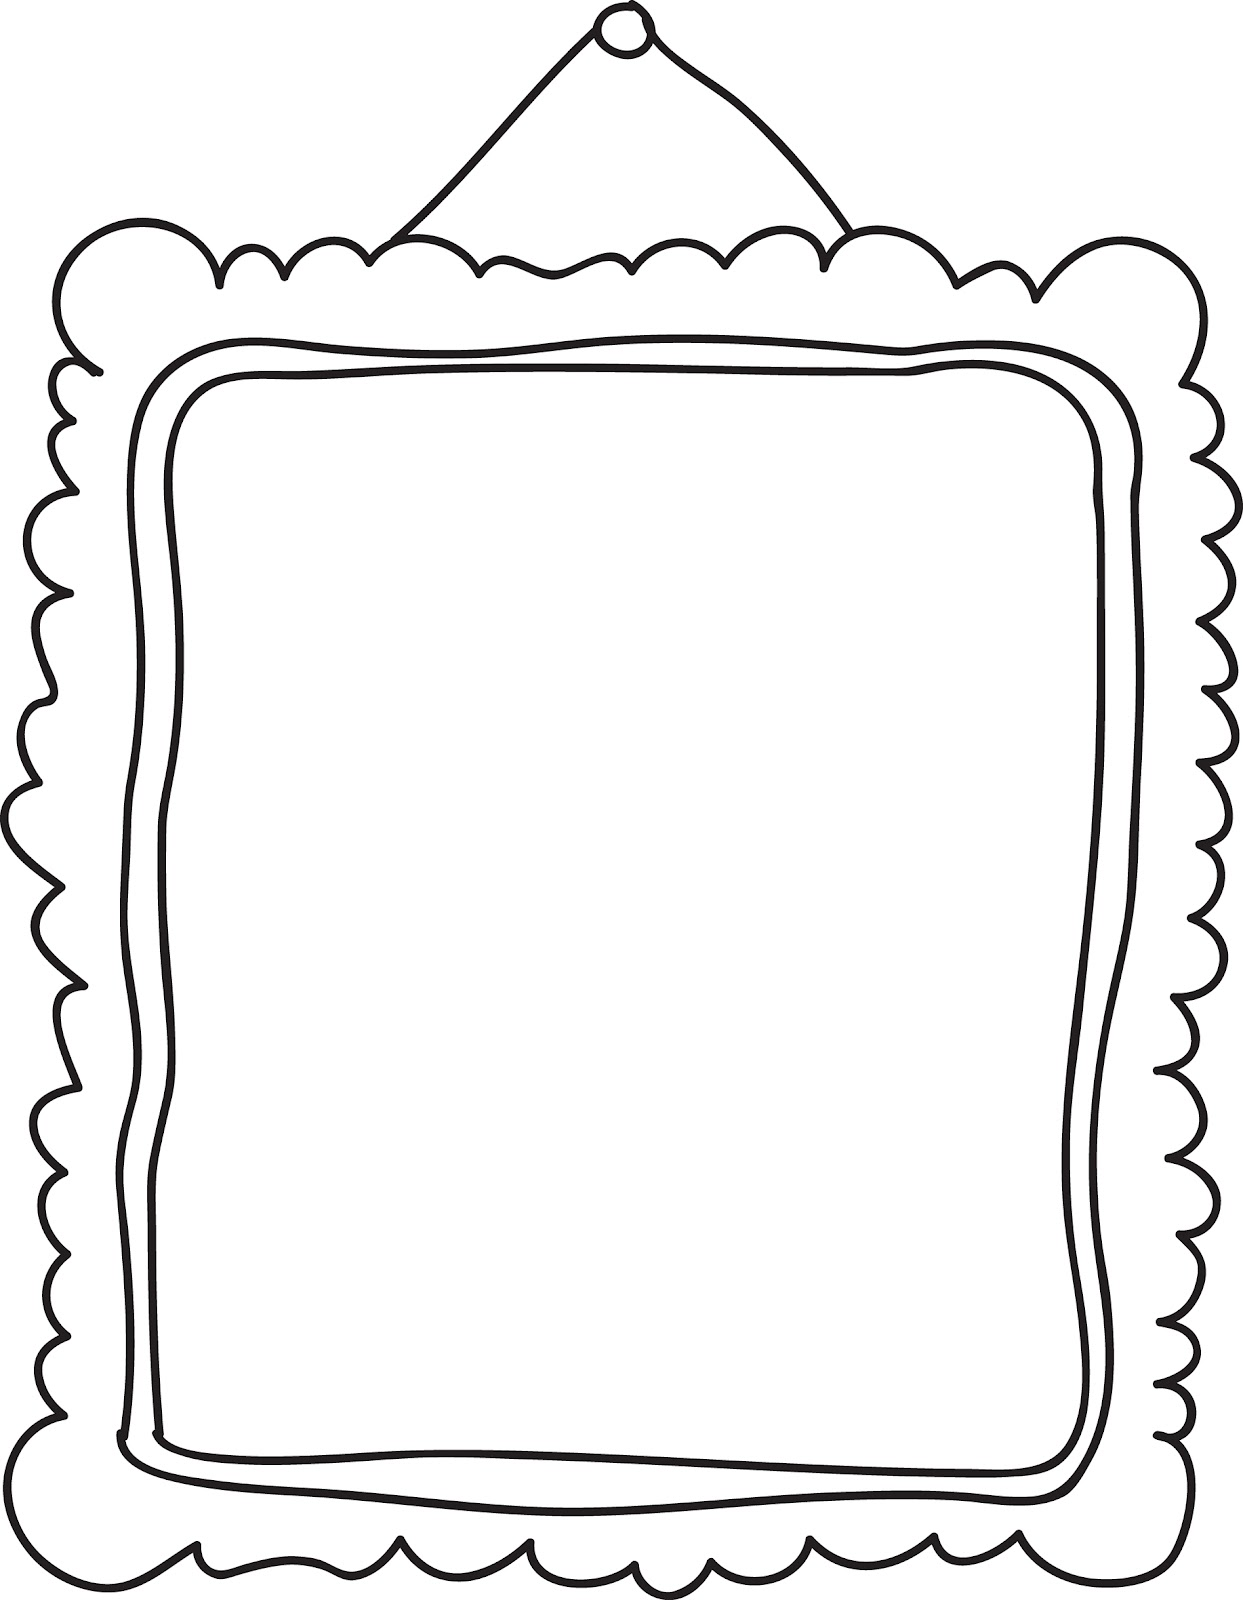 Picture Frame Cartoon Clipart - Clipart Kid